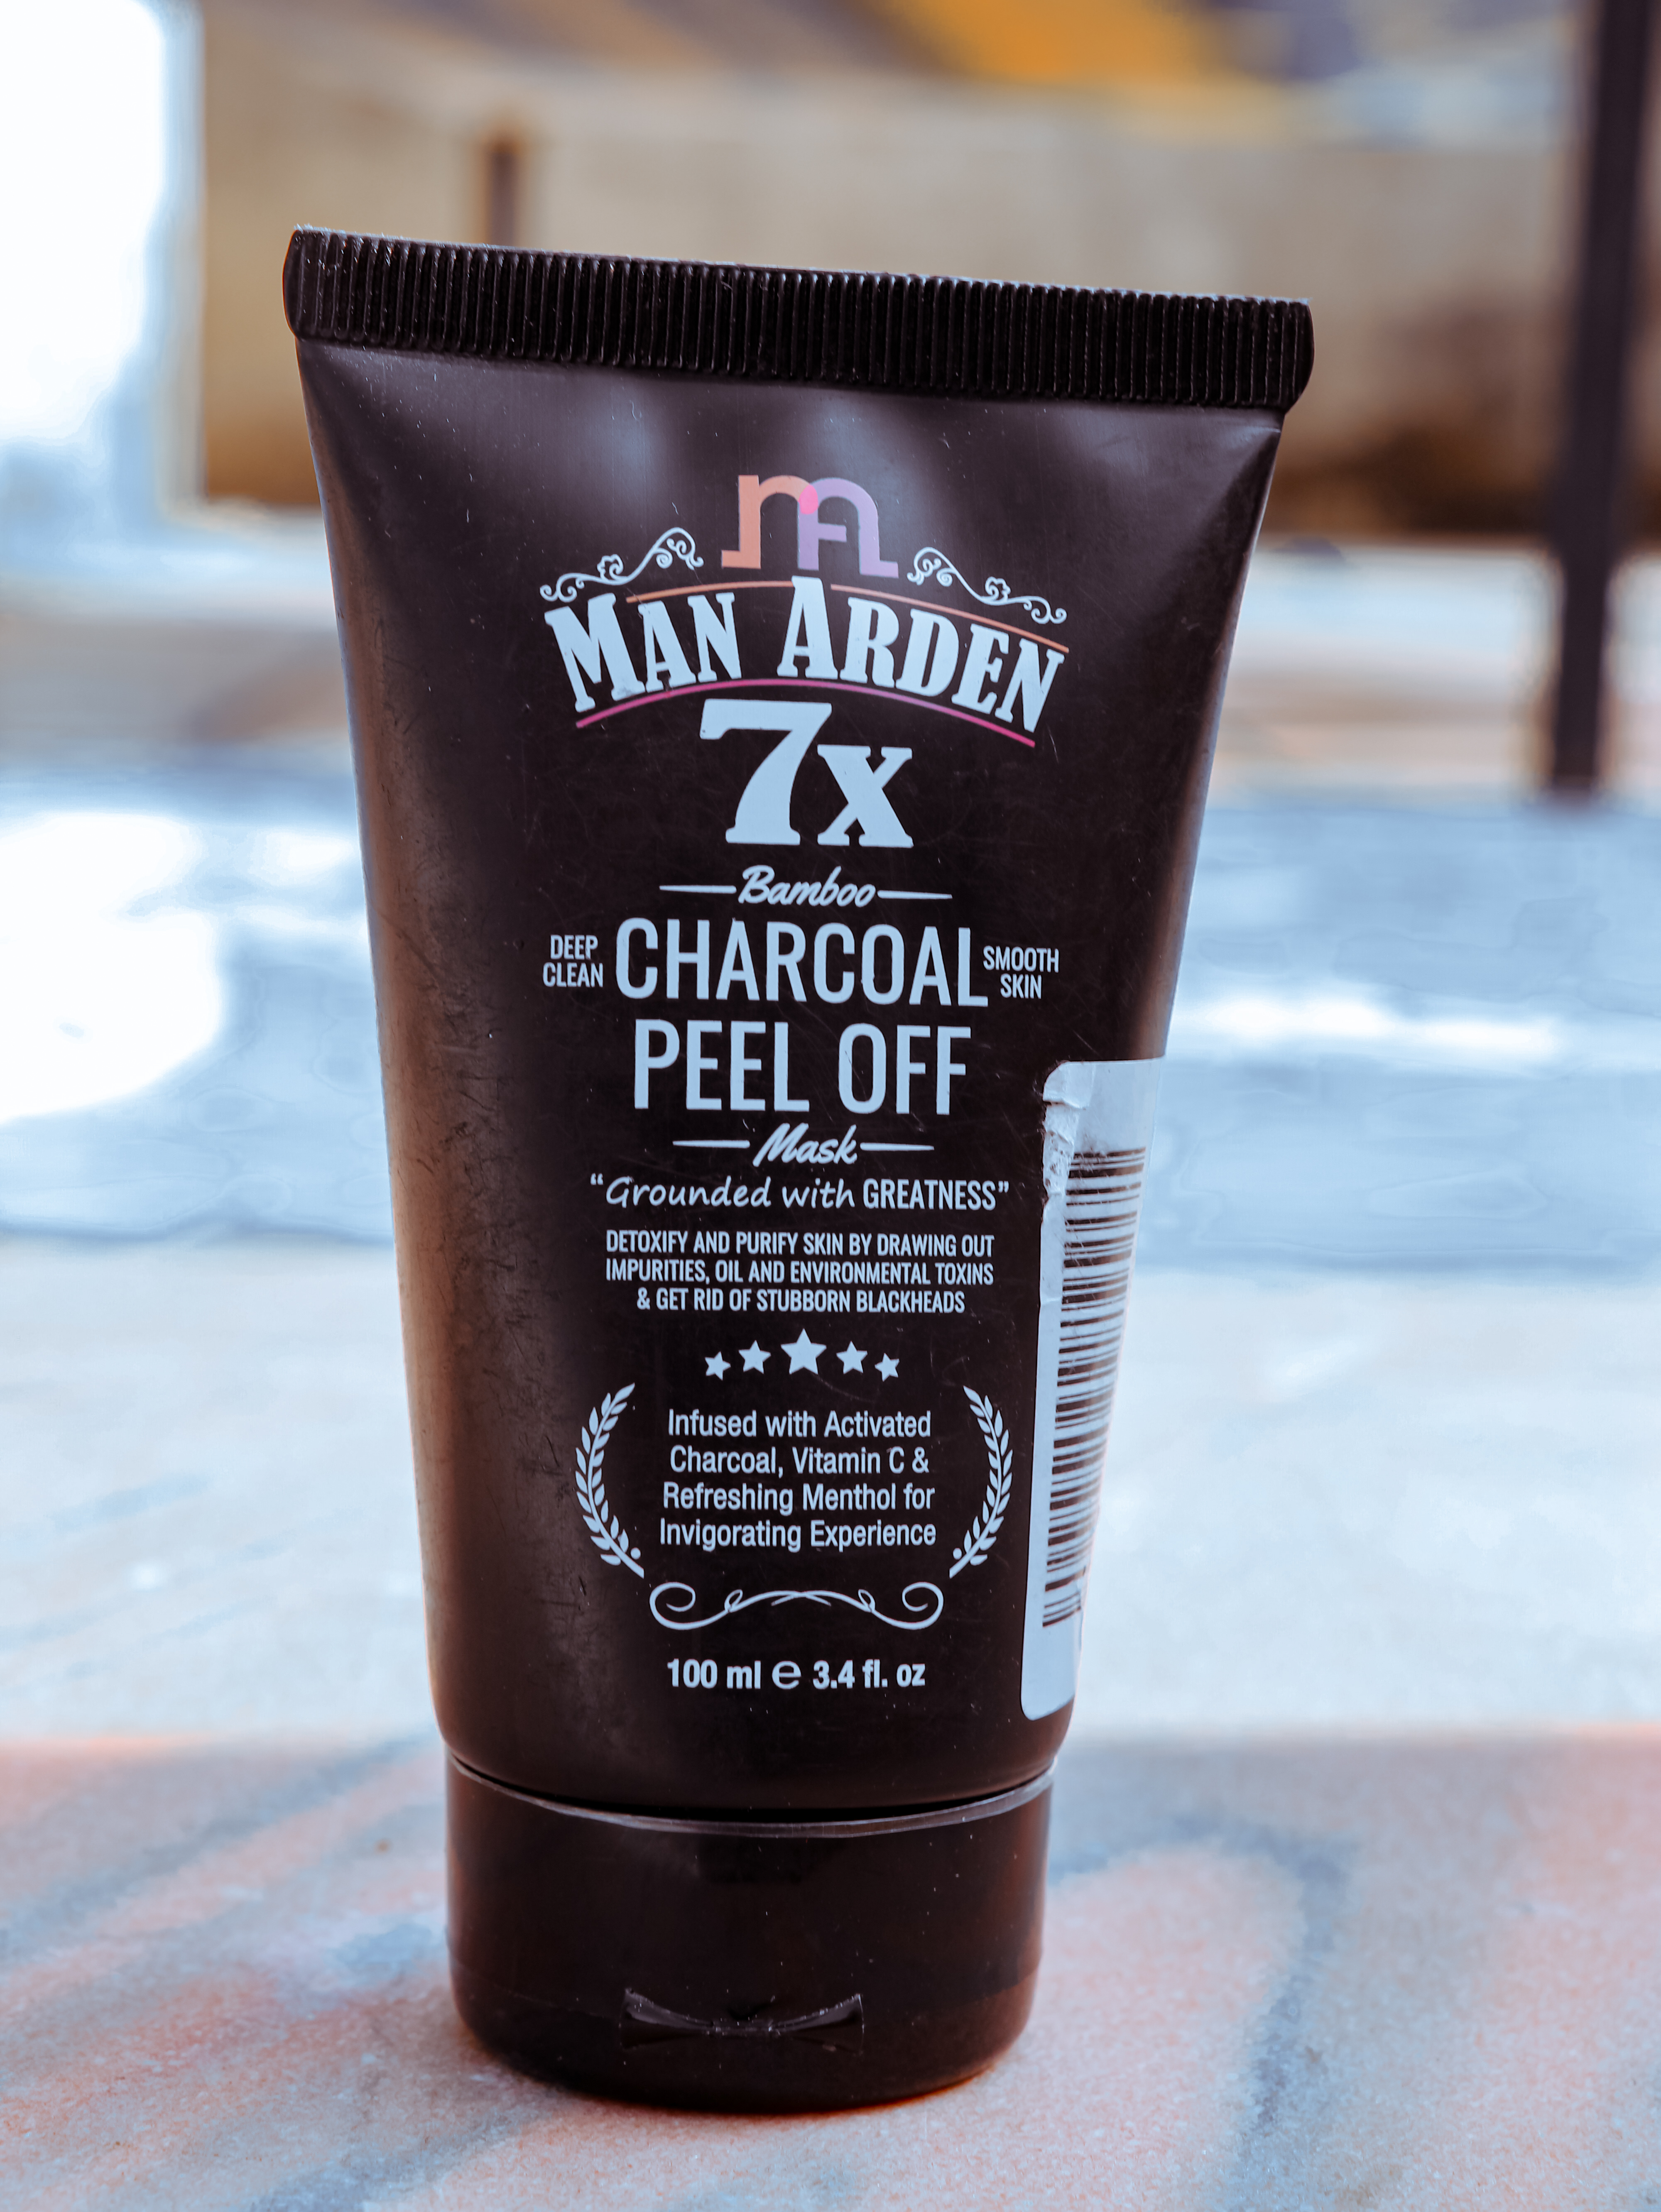 Man Arden 7X Activated Charcoal Peel Off Mask -Effective and Awsome Product-By the_photo_boy01